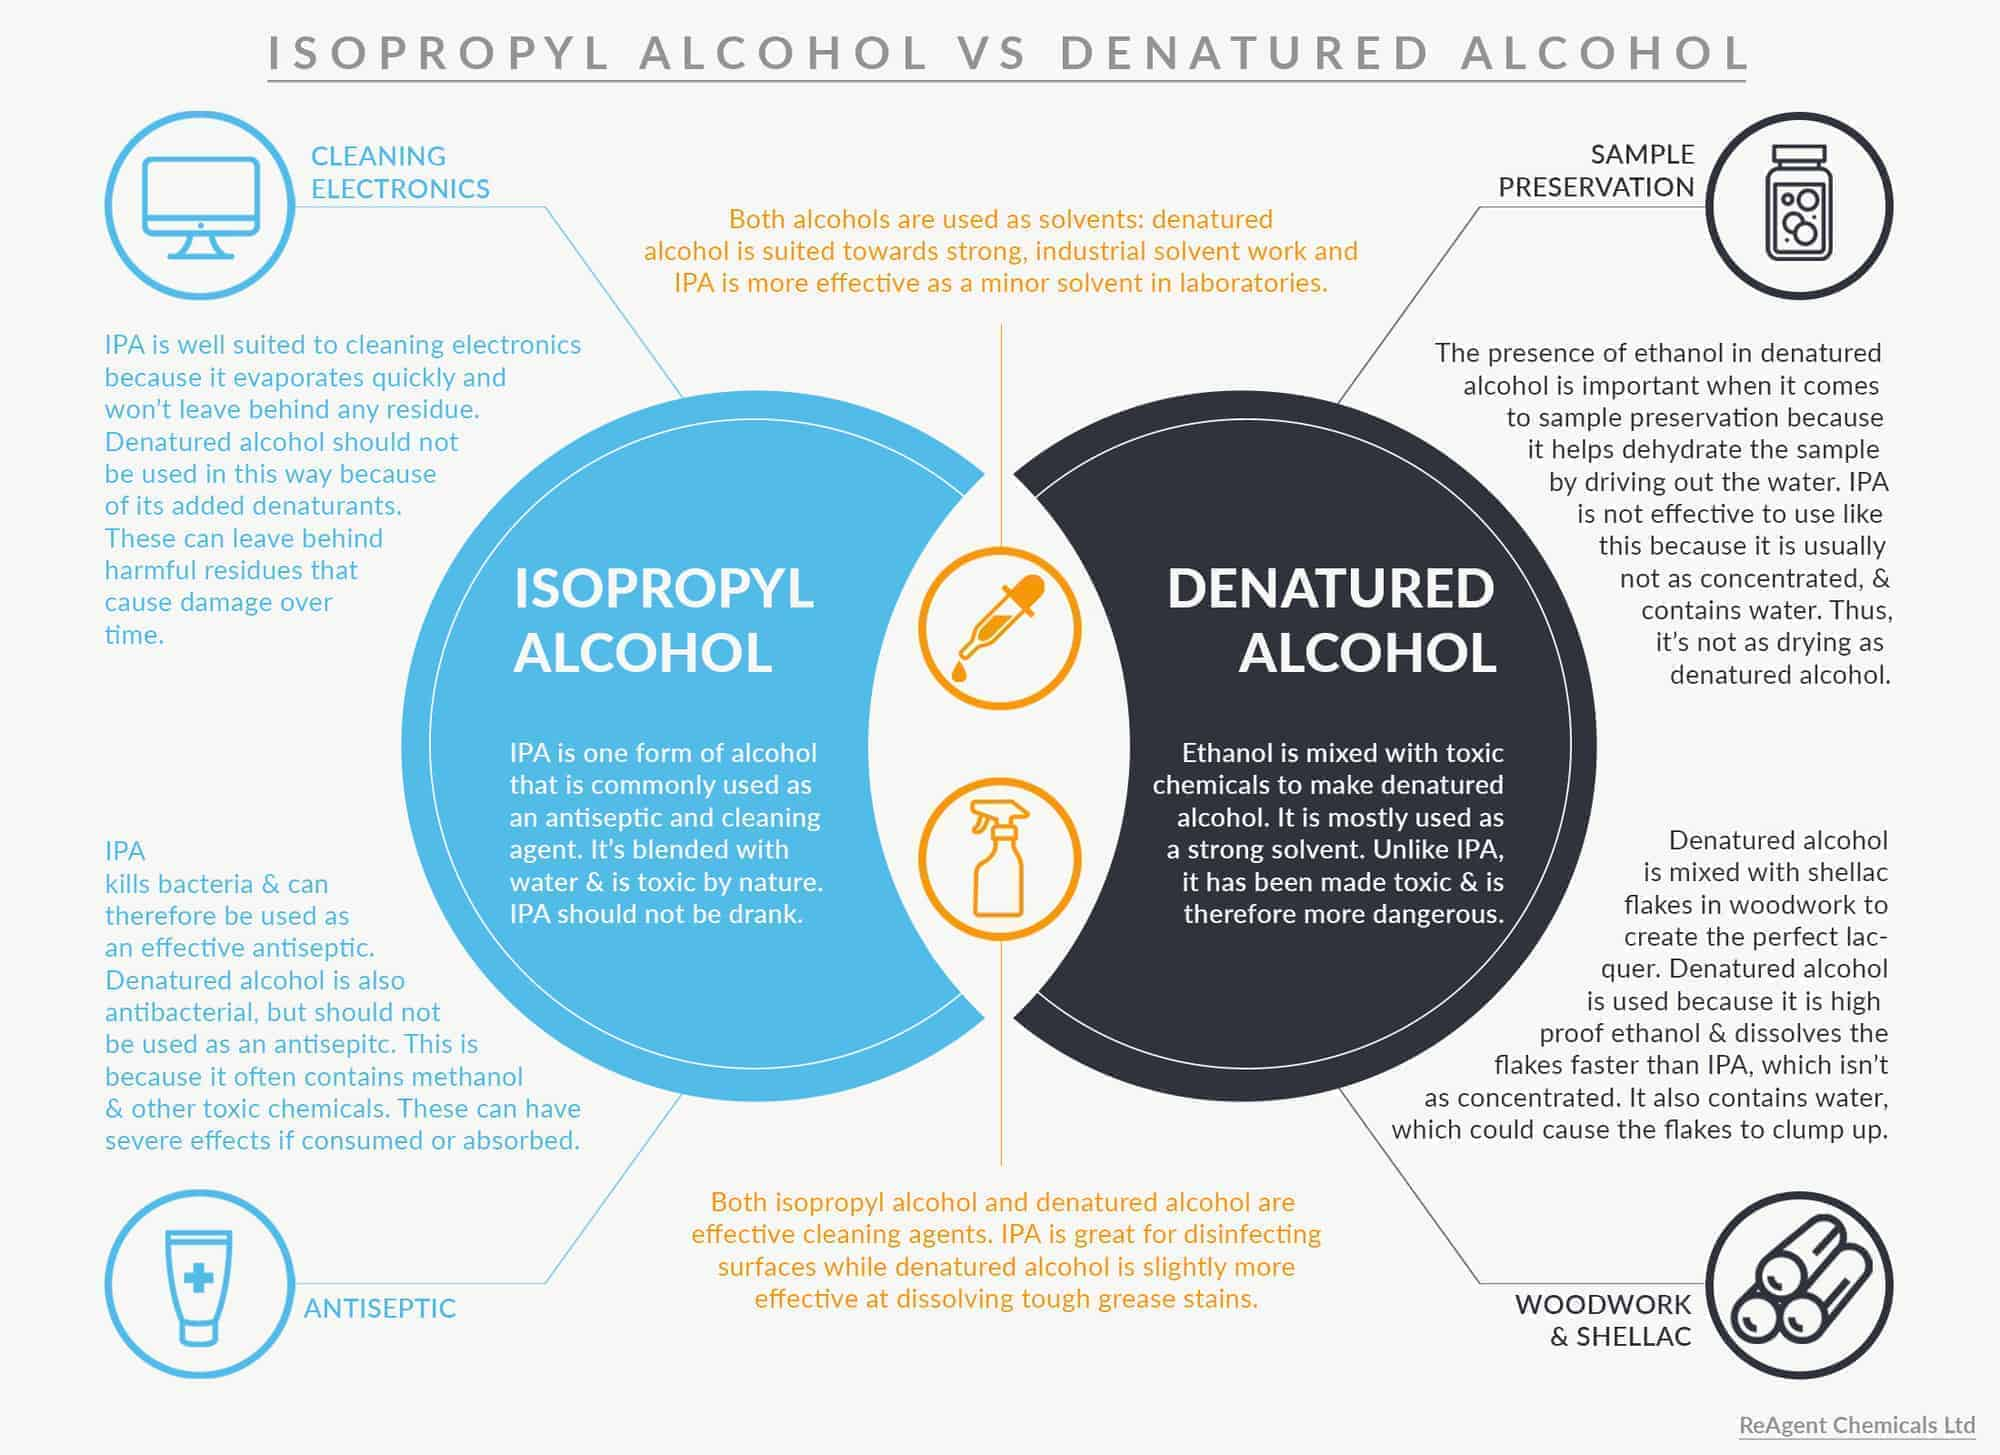 Can I Use Isopropyl Alcohol Instead of Denatured Alcohol? | ReAgent